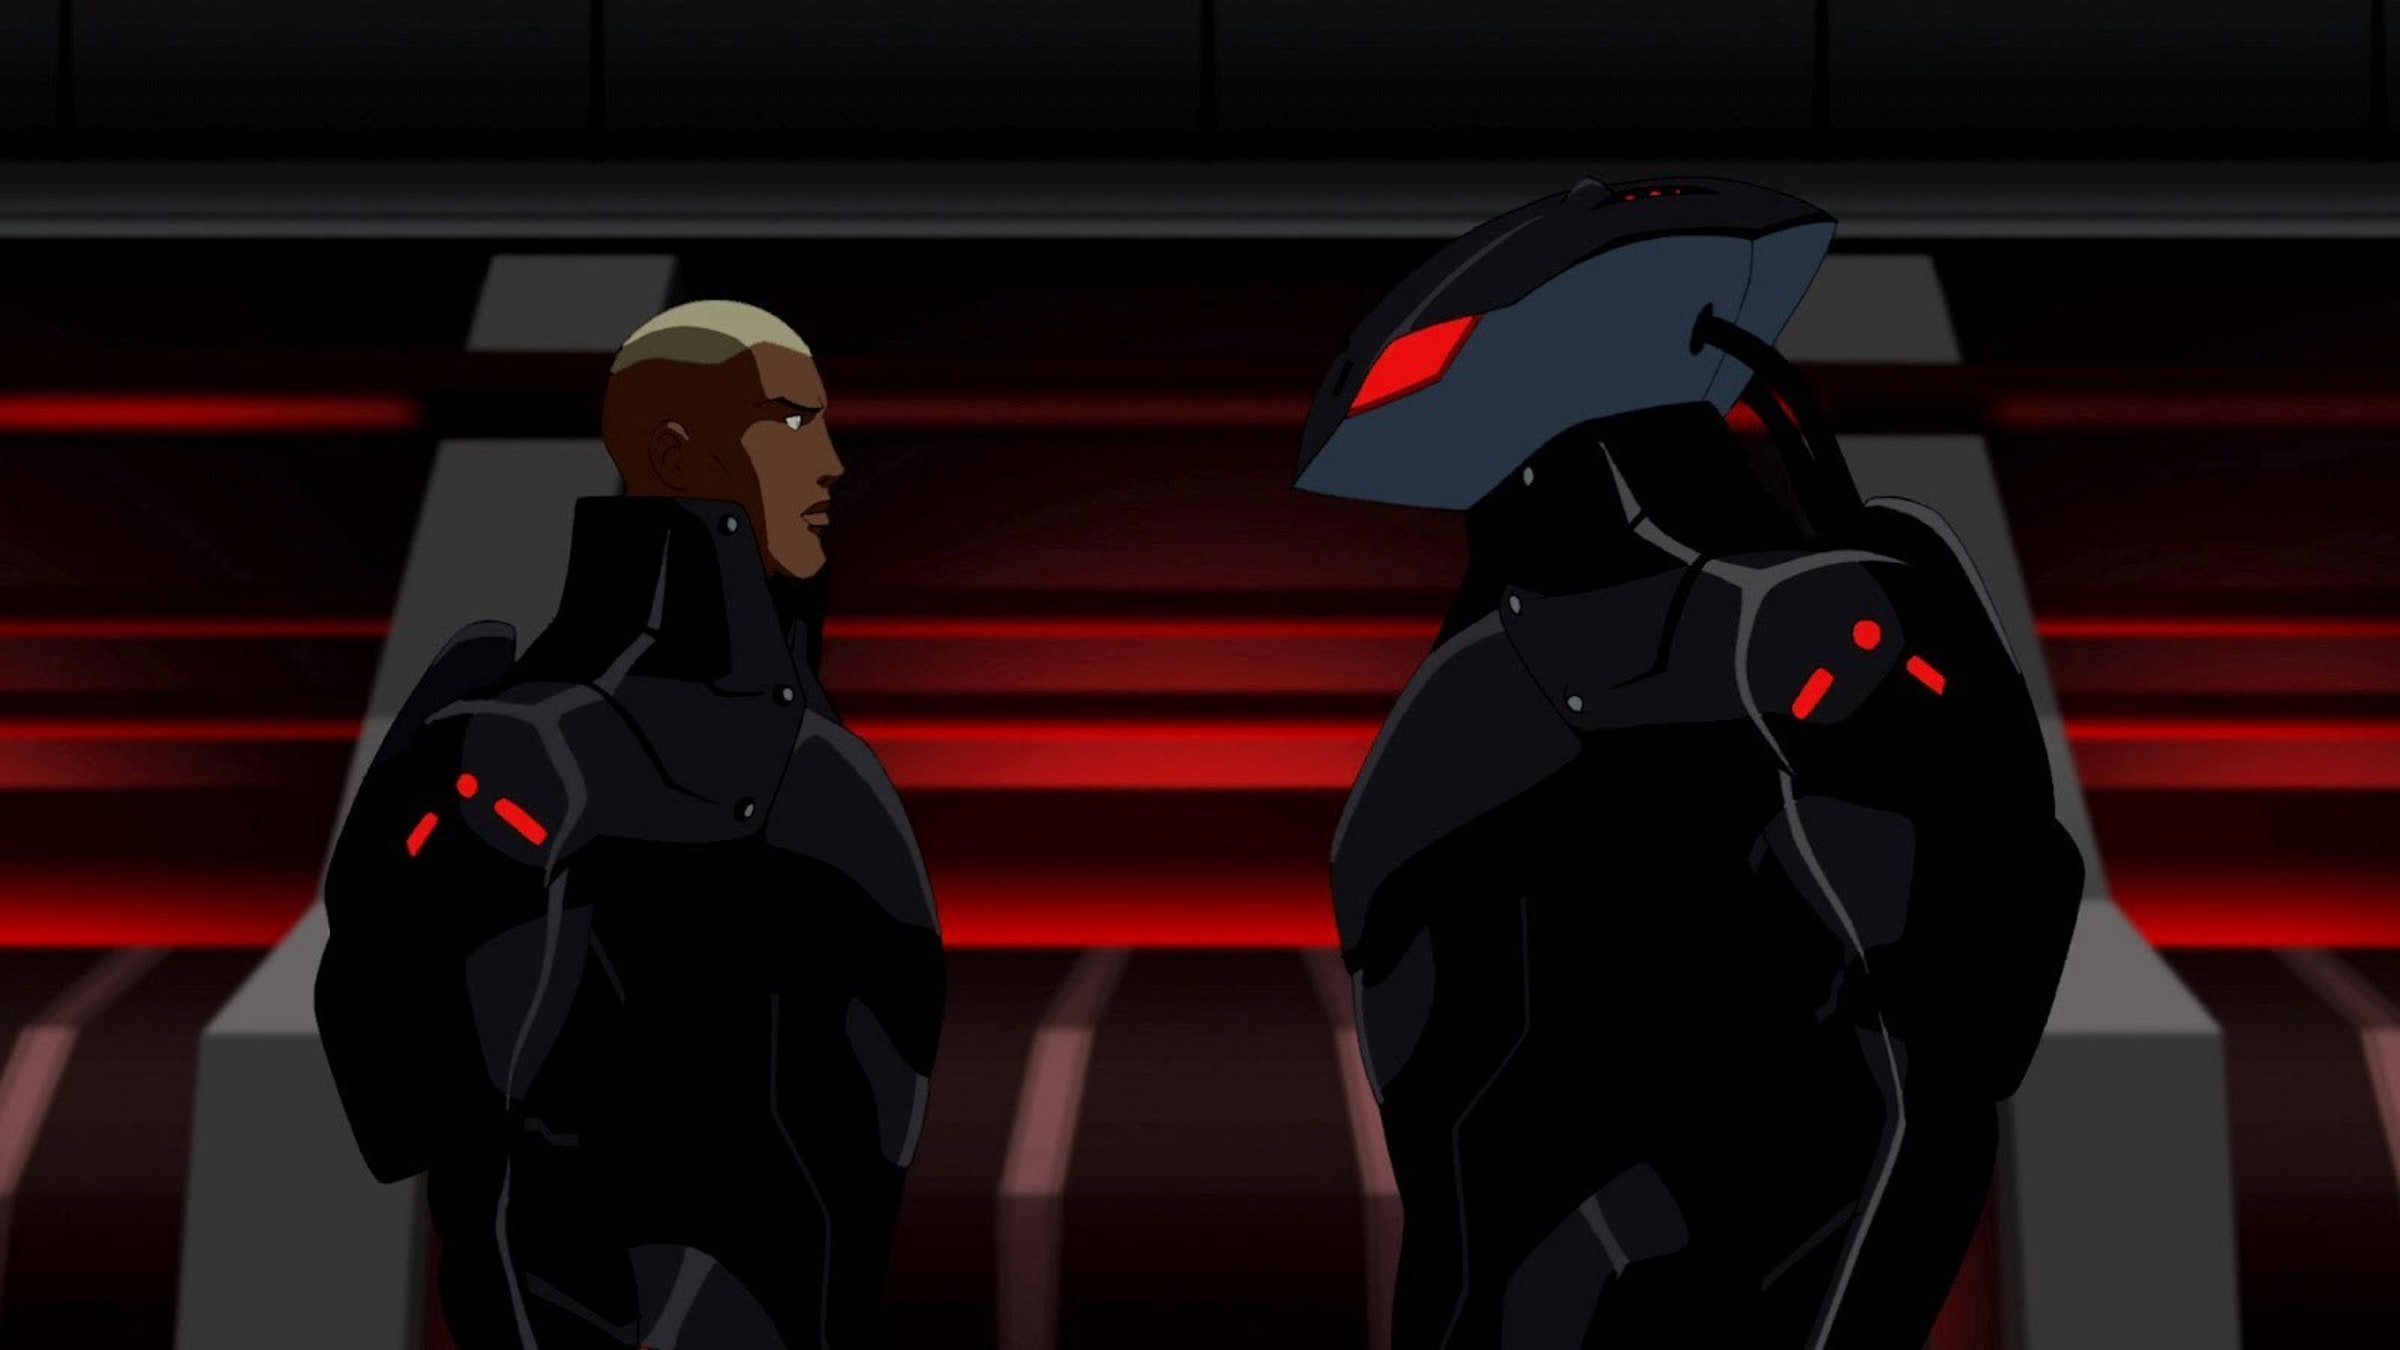 Aqualad confronts his biological father, Black Manta.